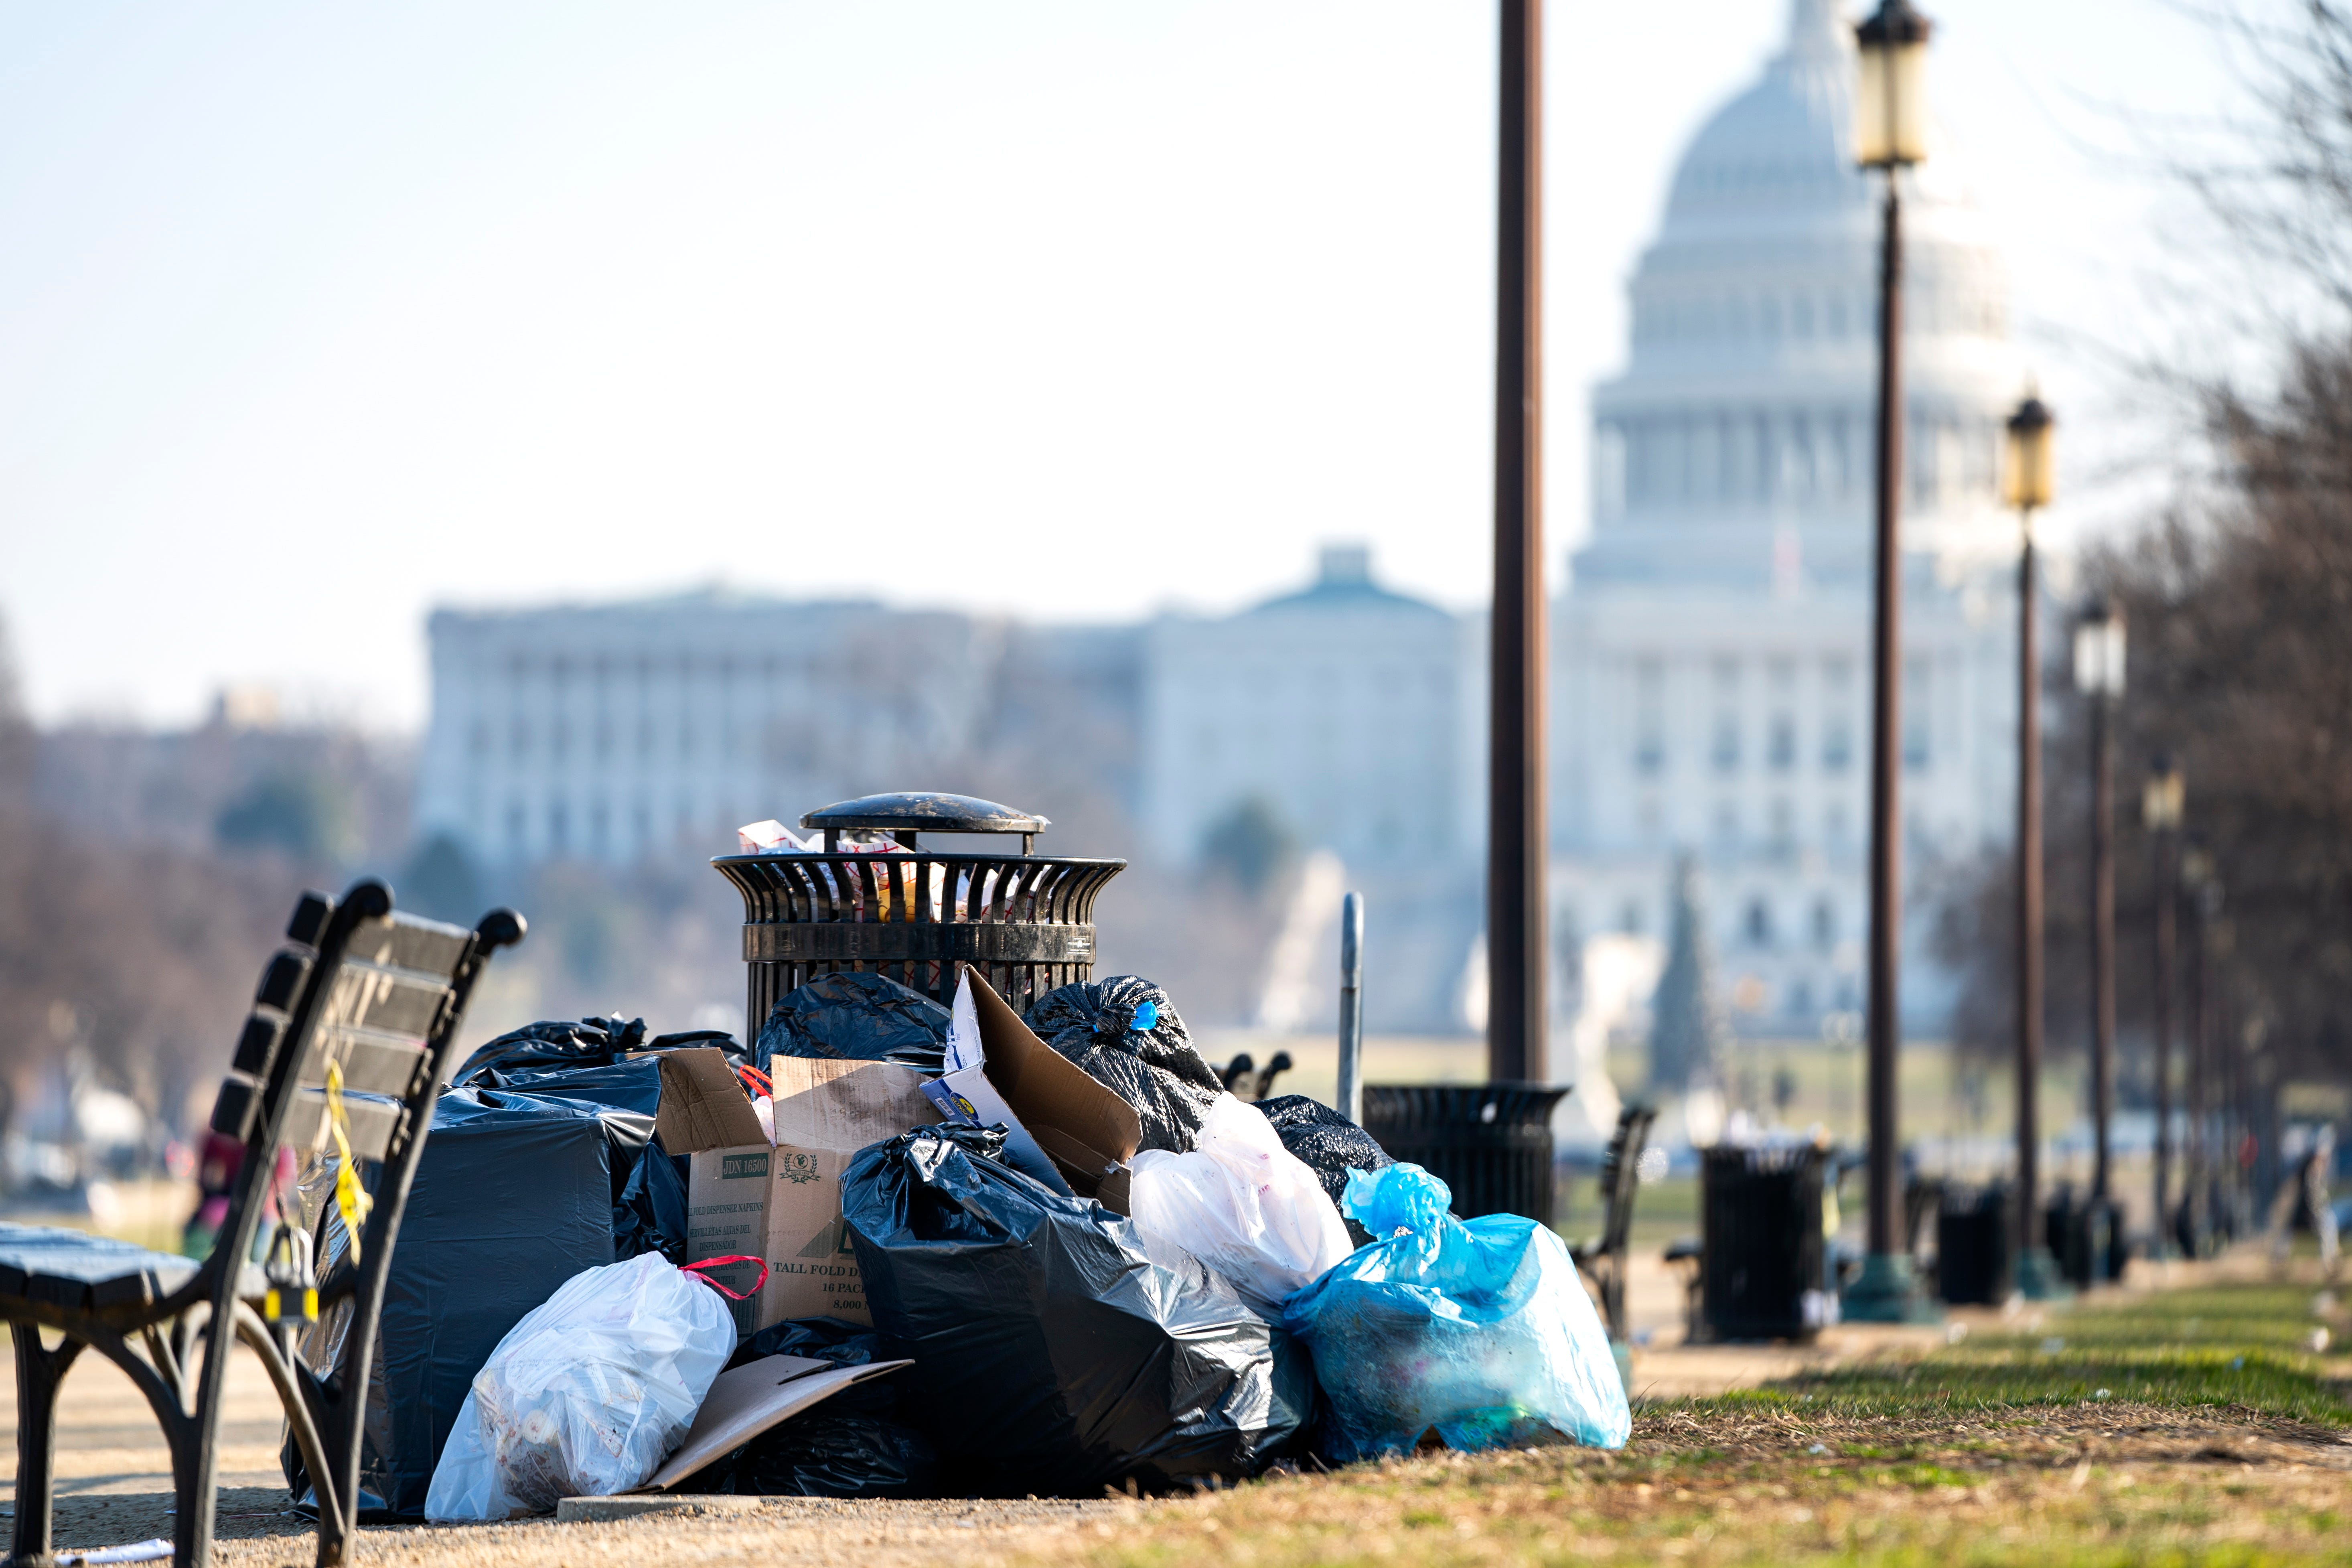 On Dec. 26, 2018, five days into a partial federal shutdown, trash piled up on the National Mall in Washington, D.C.